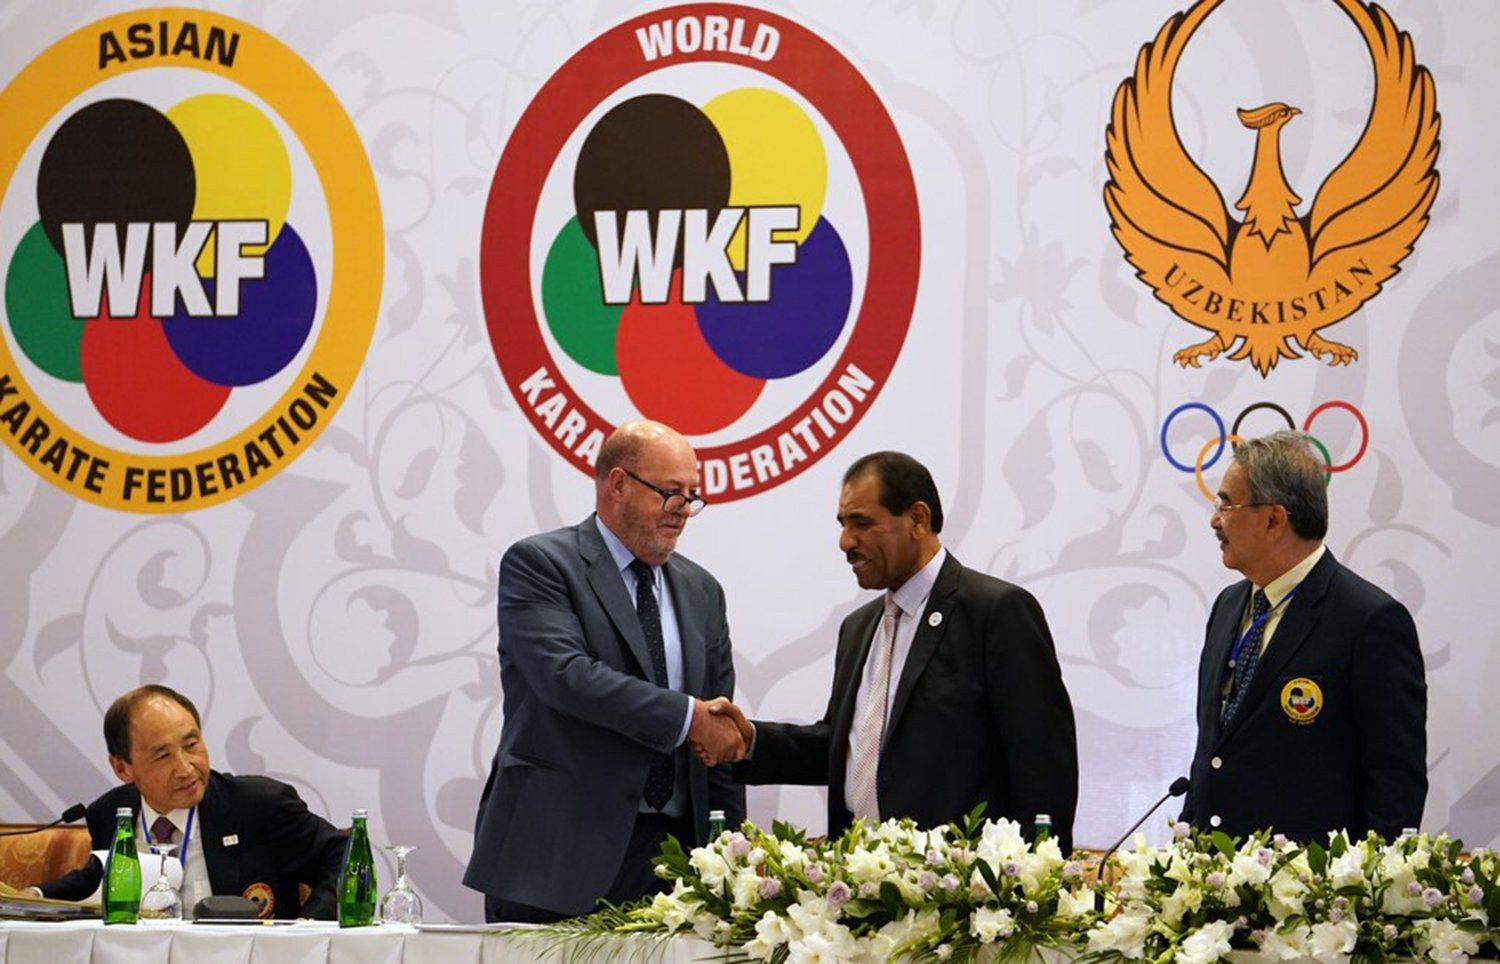 WKF President Espinós sees Nasser Alrazooqi elected as Asian Karate Federation President